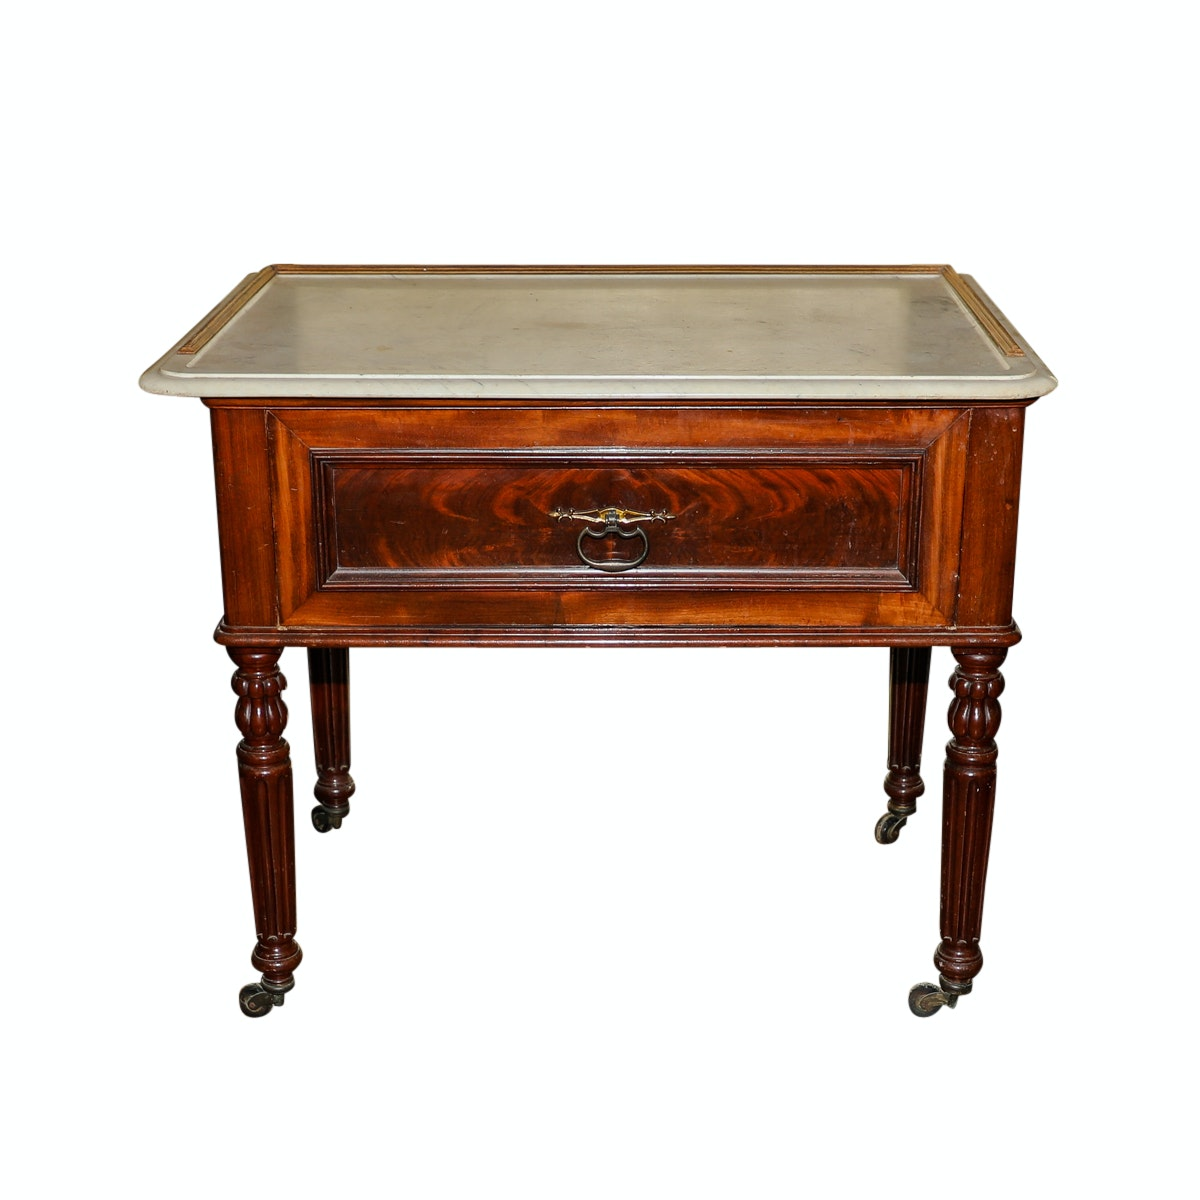 Antique Mahogany Pastry Table with Marble Top